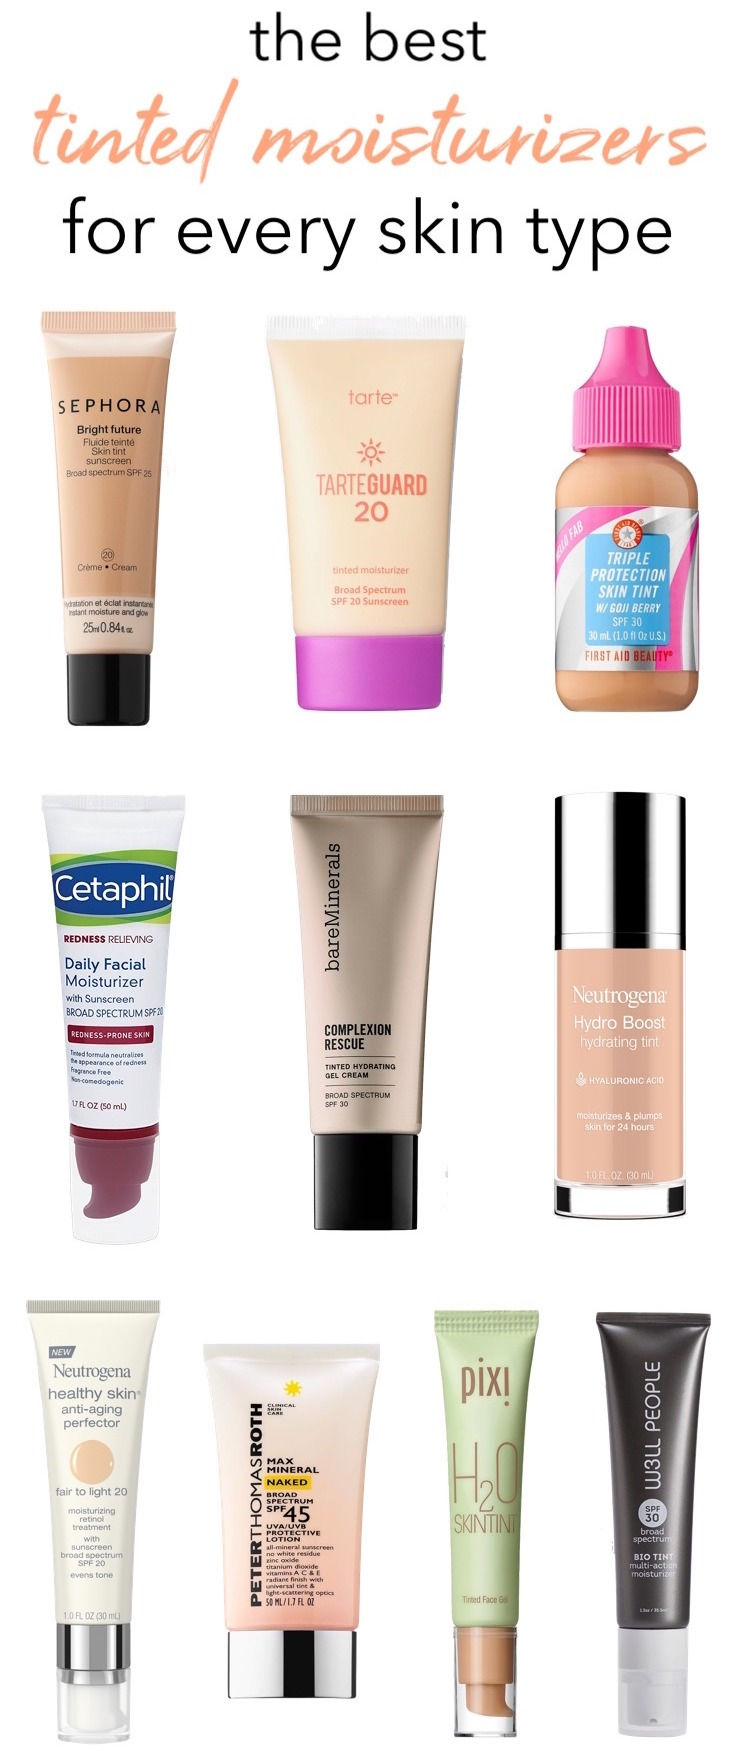 Hate the heavy feel of foundation in summer? These are the best tinted moisturizers with SPF to lighten up your makeup routine! Whether you have oily skin, acne-prone or dry and sensitive, there's one for every skin type and budget!